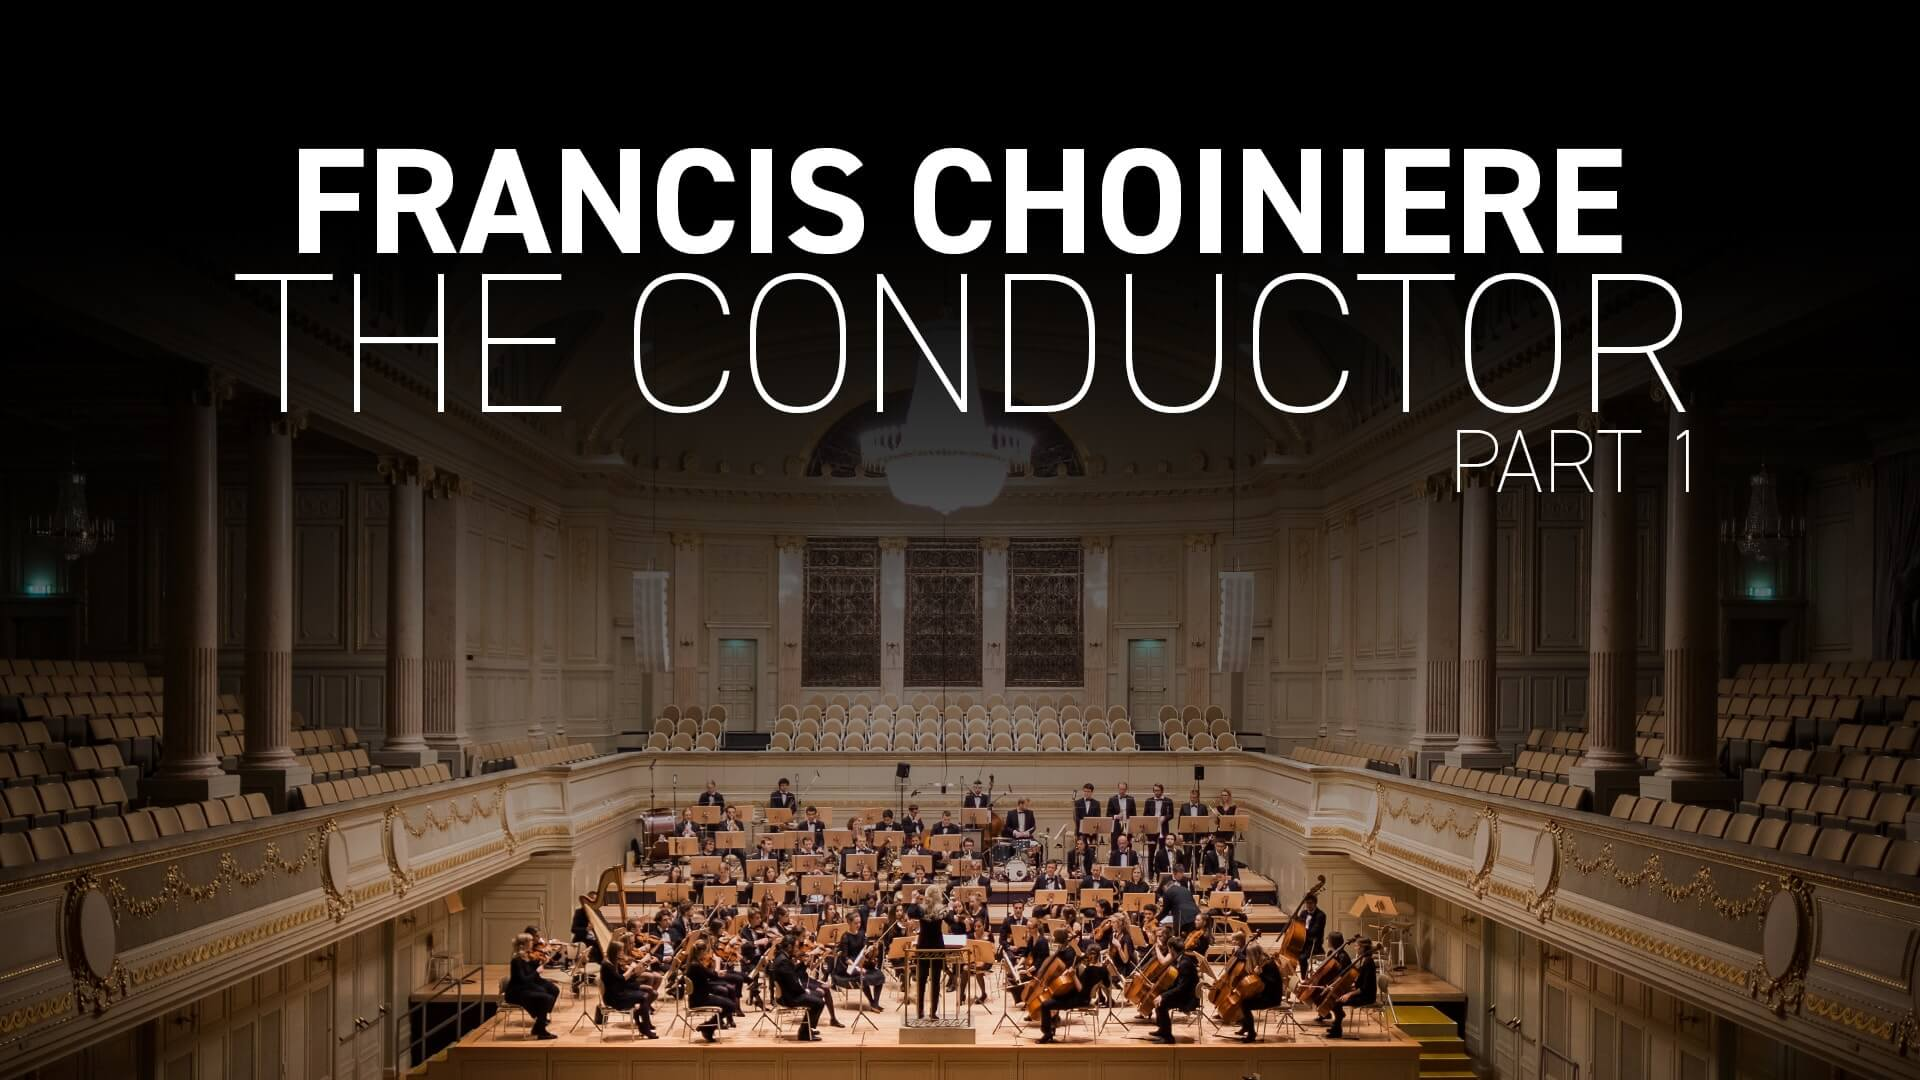 The conductor, a meeting with Francis Choiniere (part one)